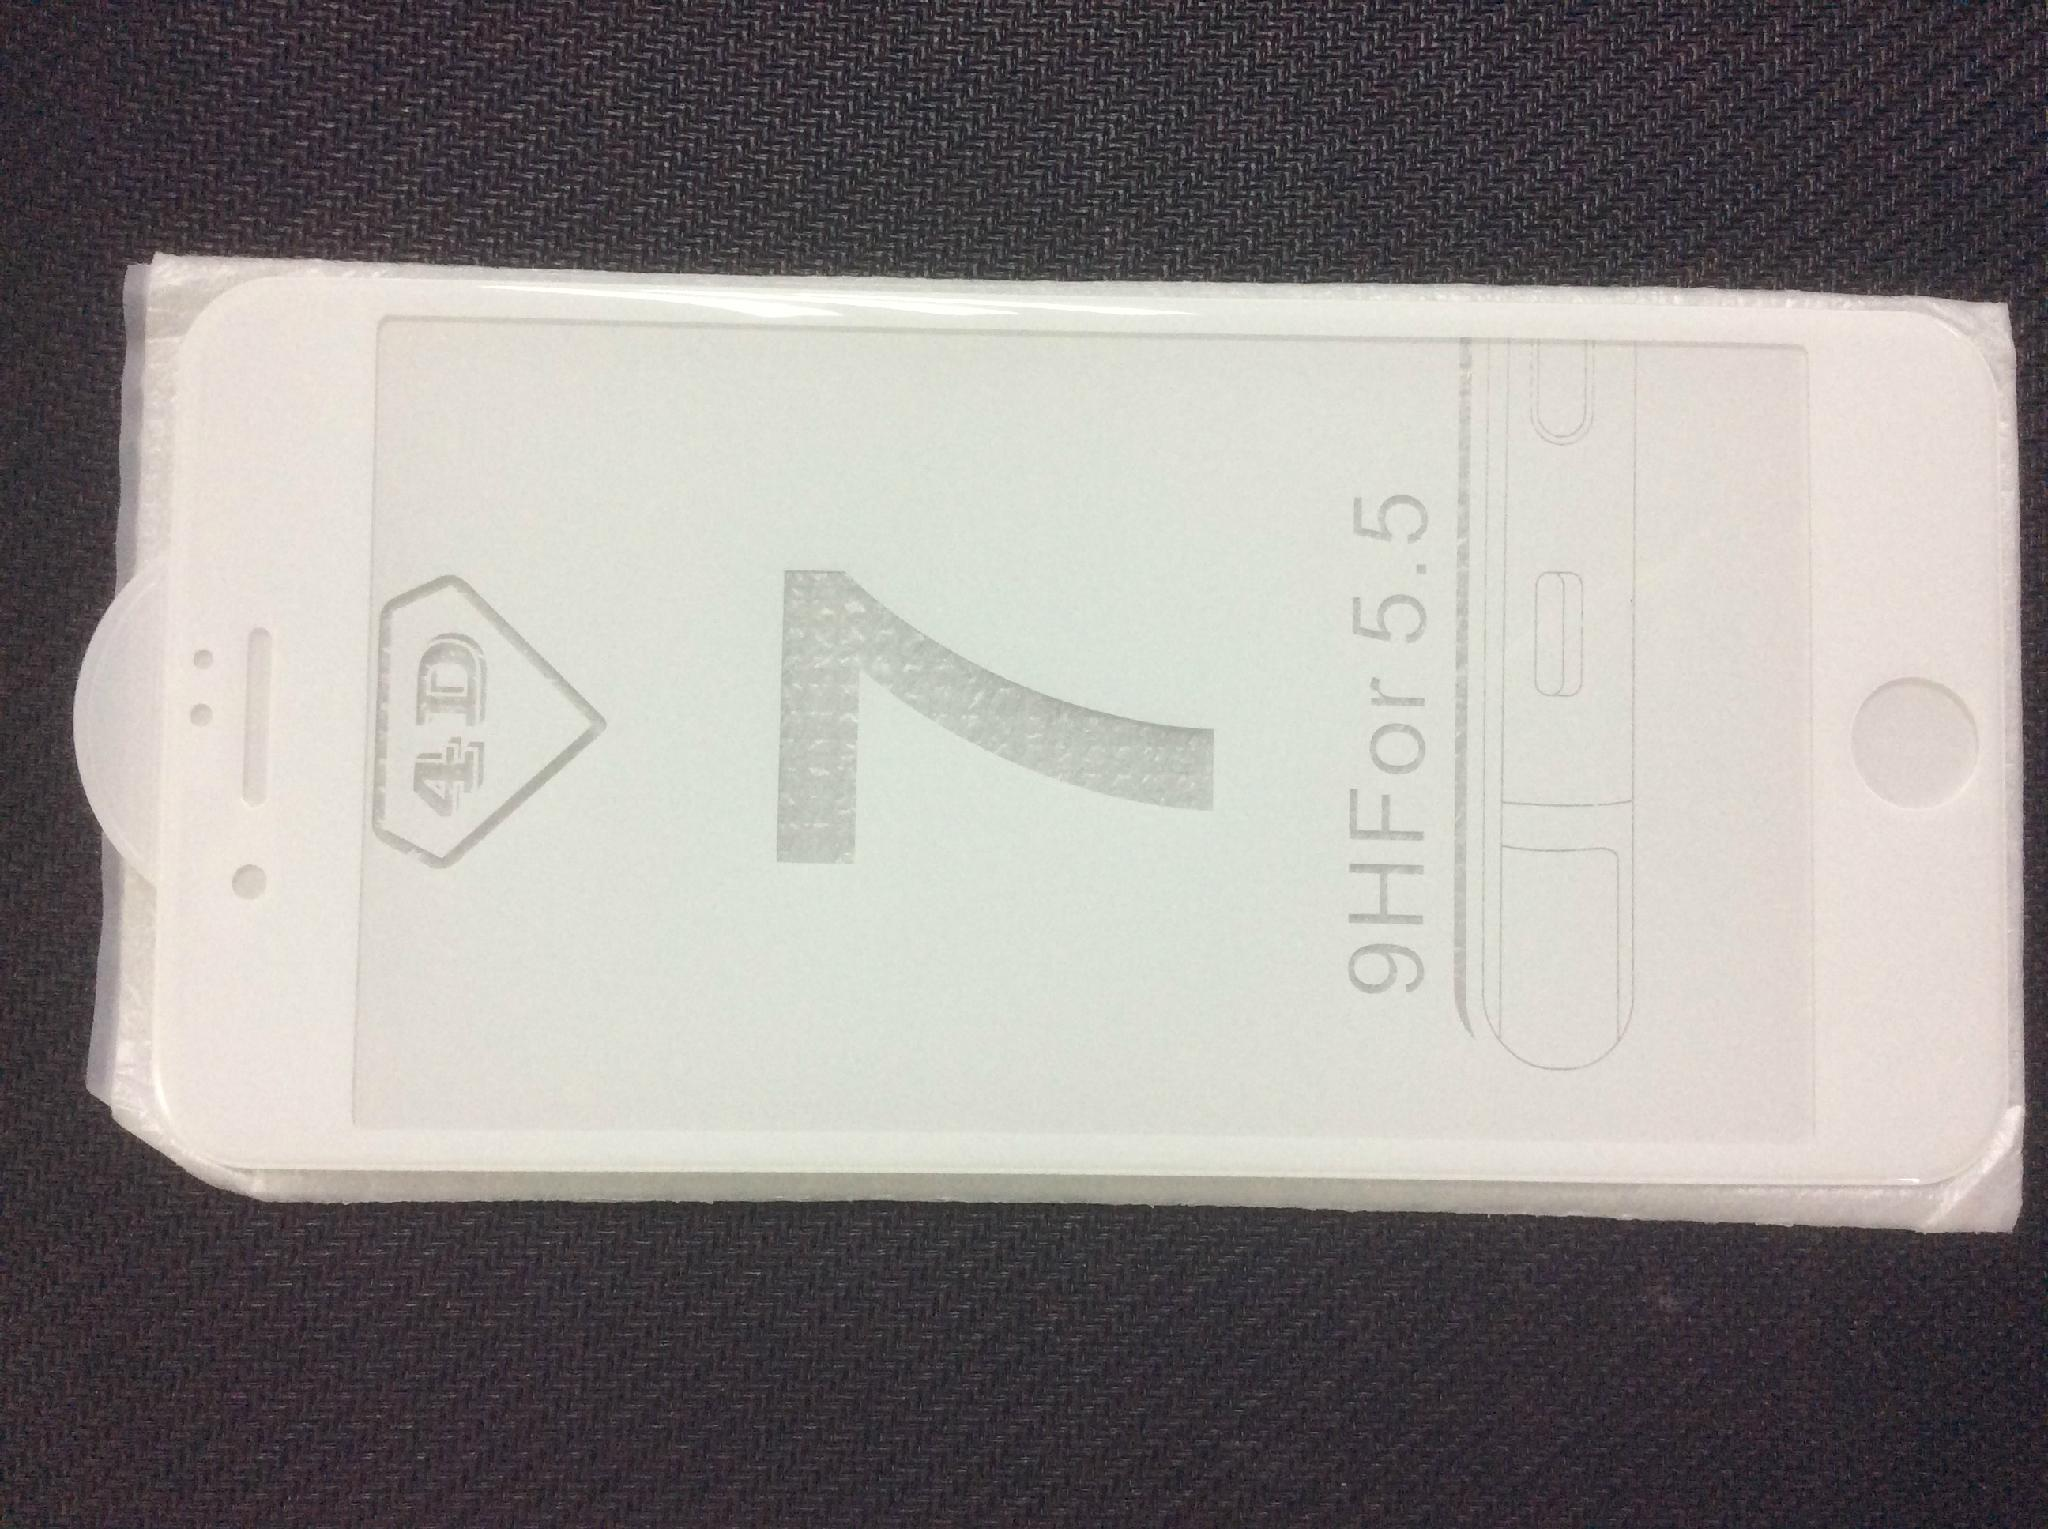 i-phone tempered glass screen protector 4